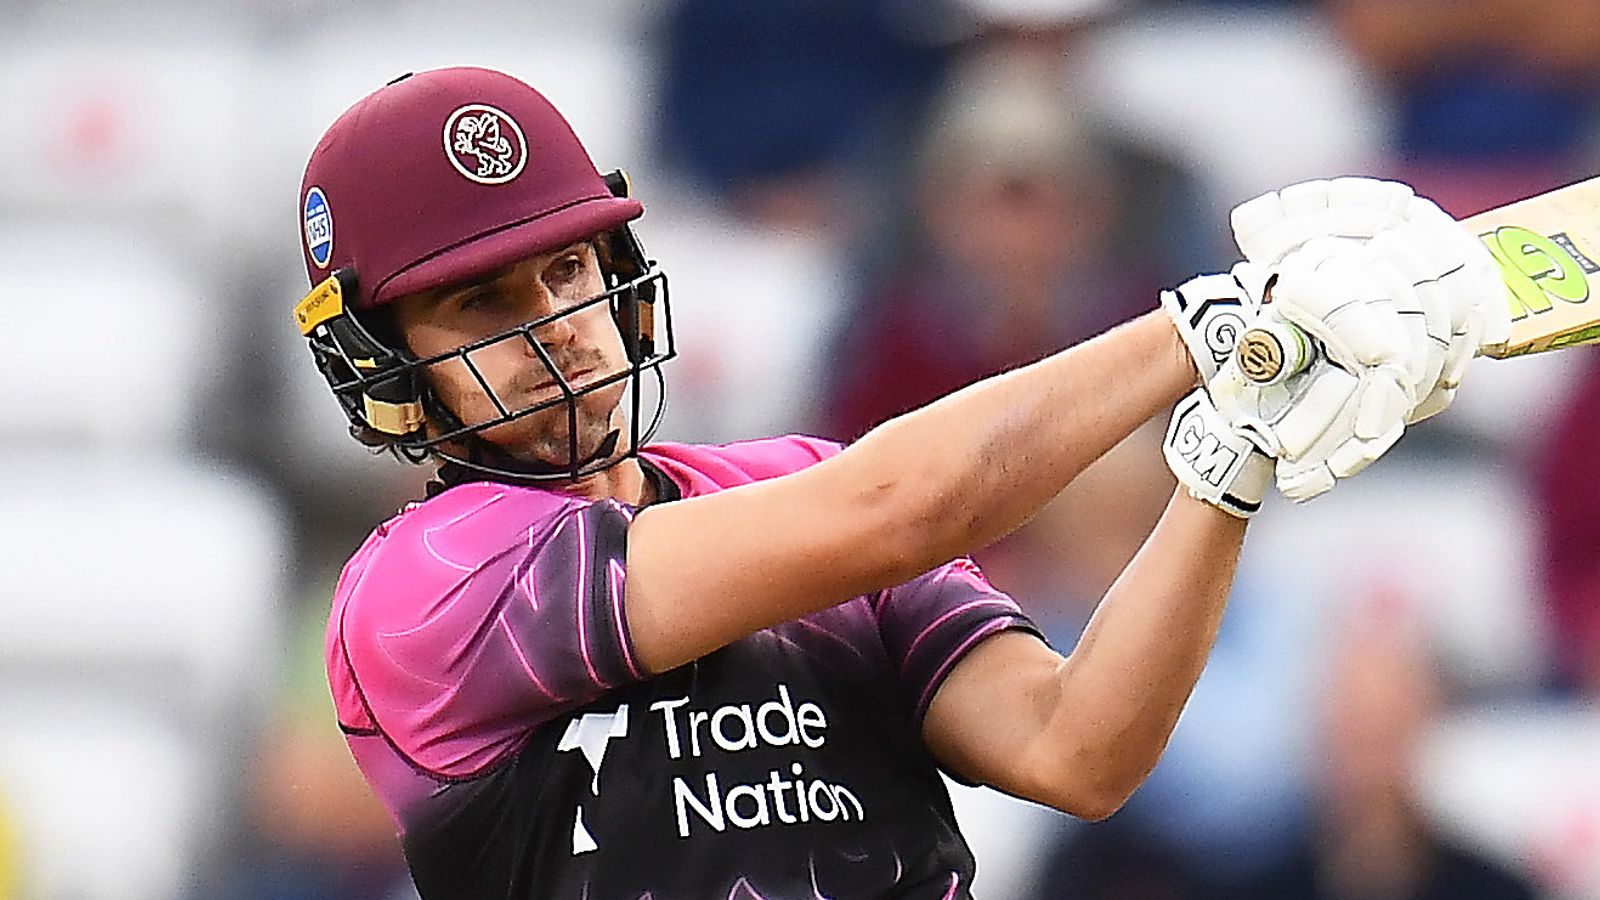 Royal London One-Day Cup: Somerset beat Glamorgan by one run in thrilling finish